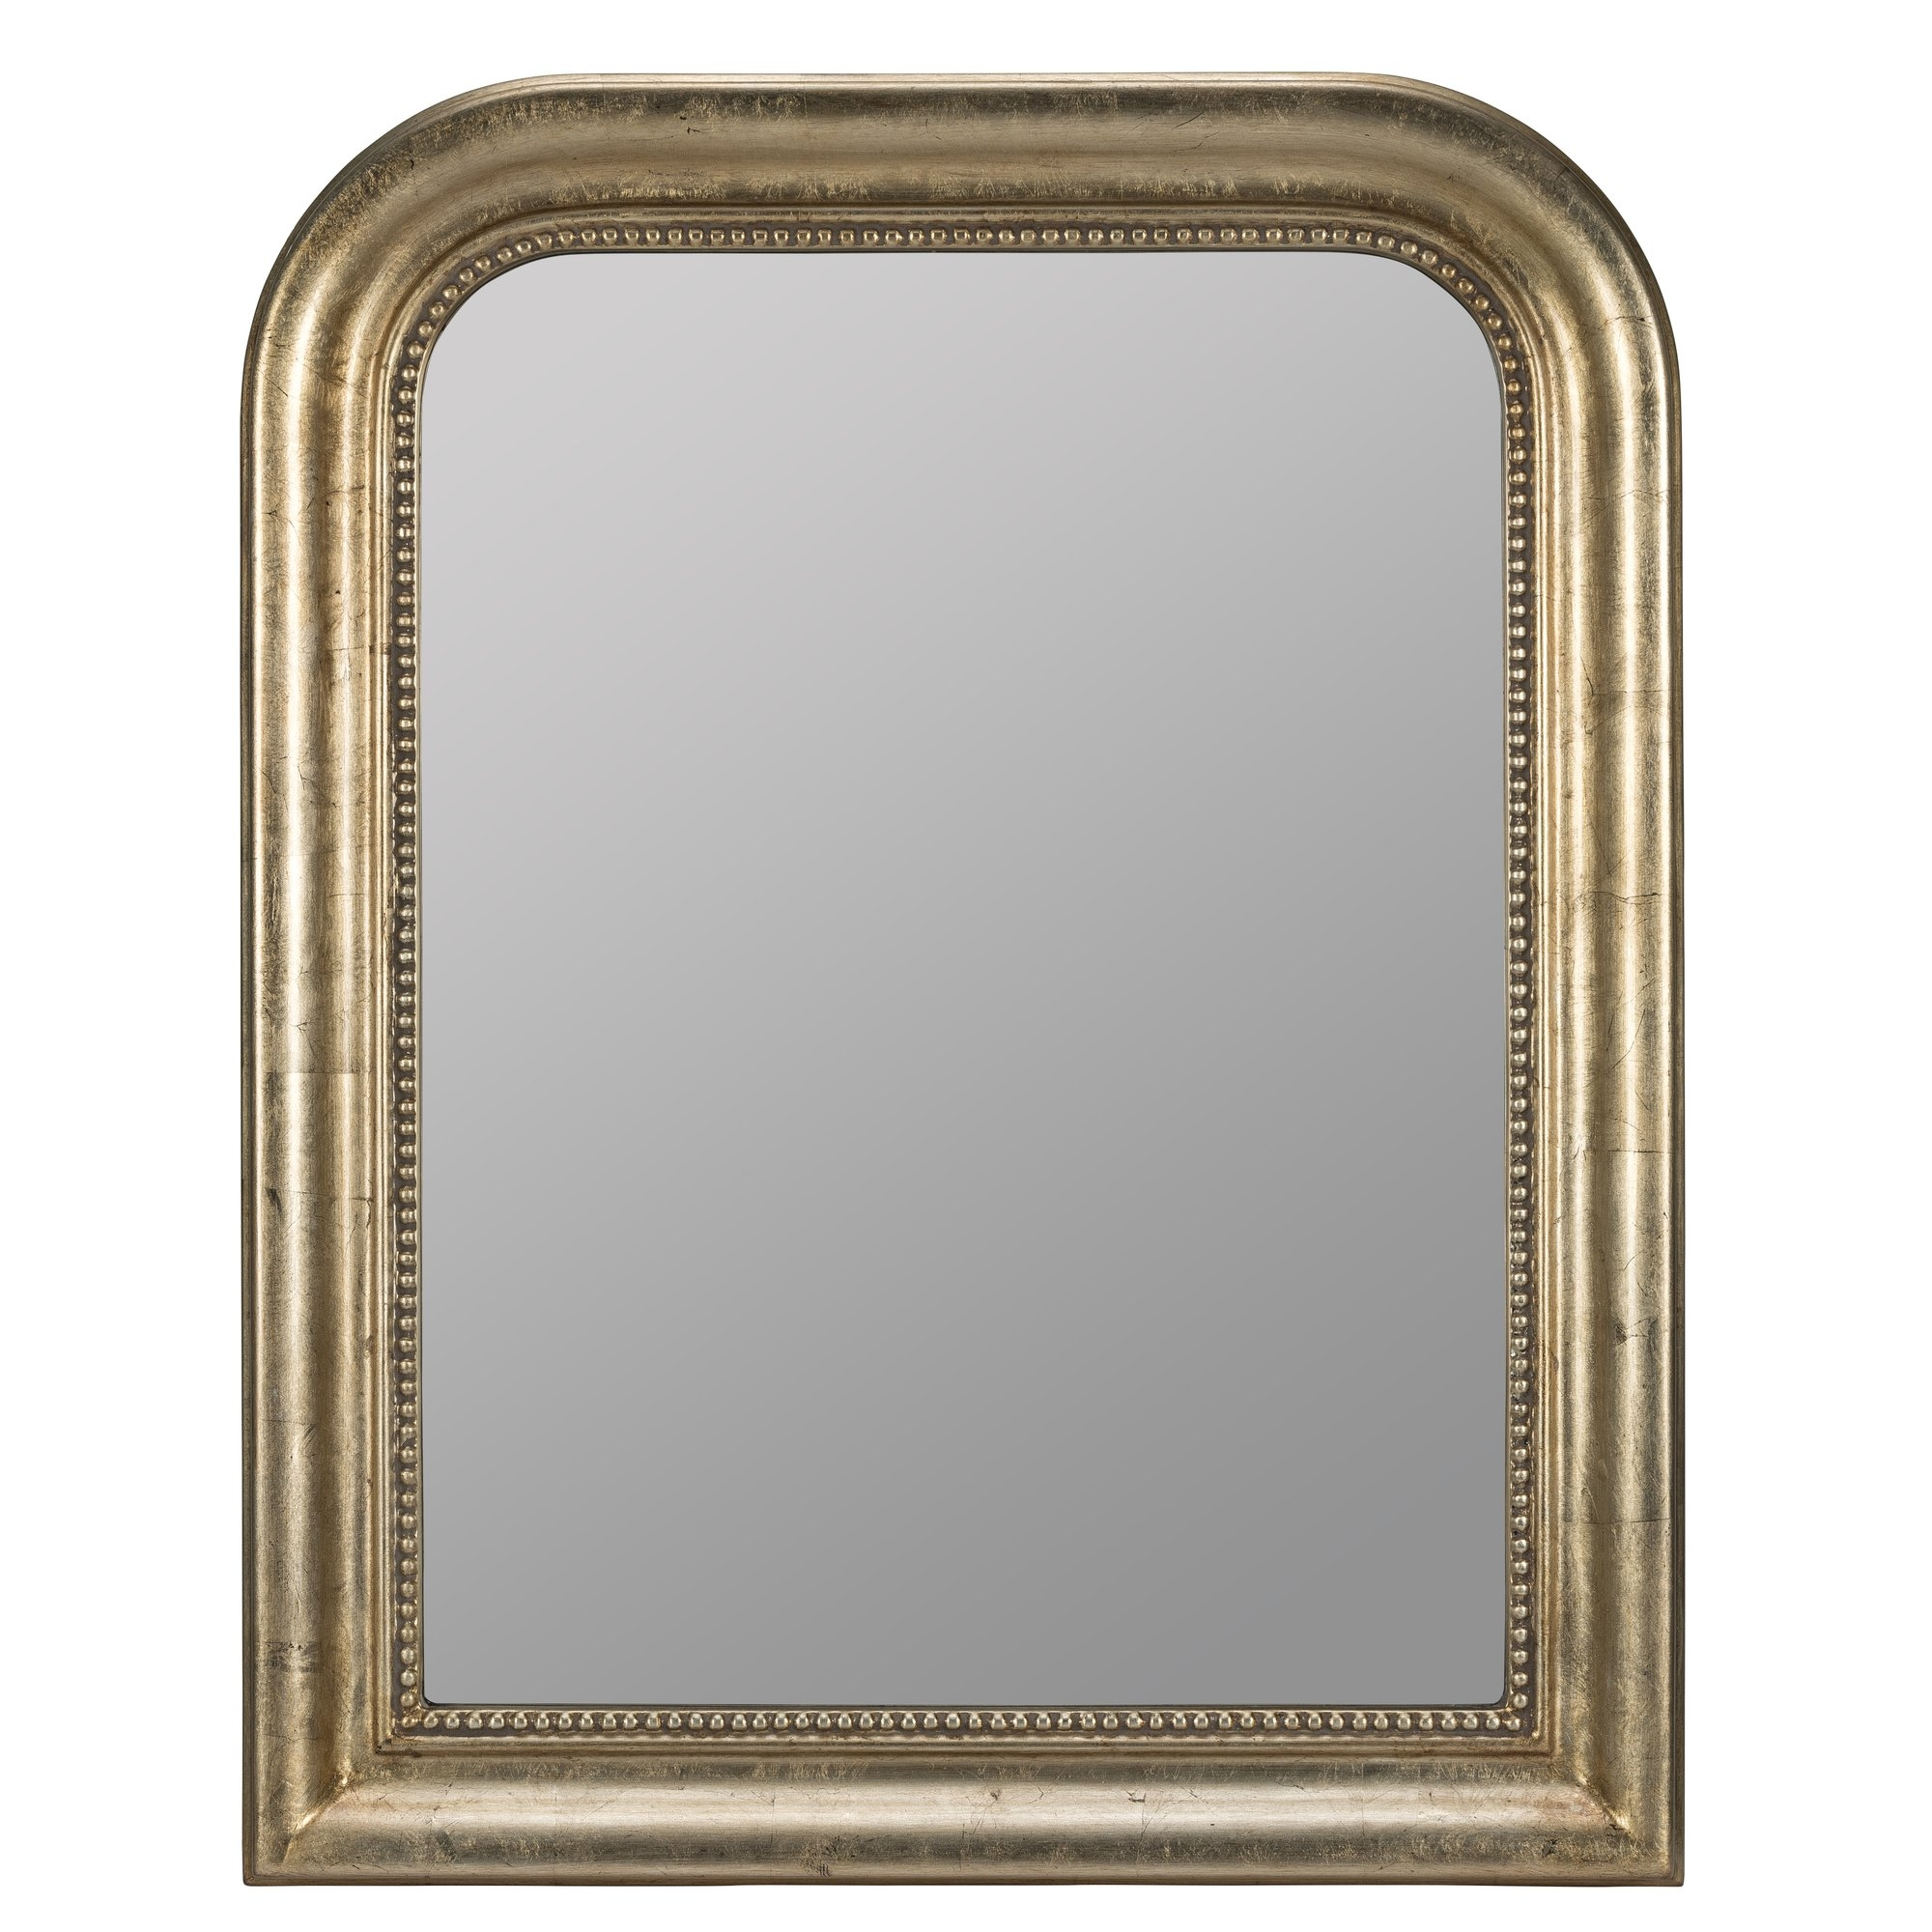 Dar Home Co Antique Champagne Wall Mirror Reviews Wayfair In Champagne Wall Mirror (View 4 of 15)